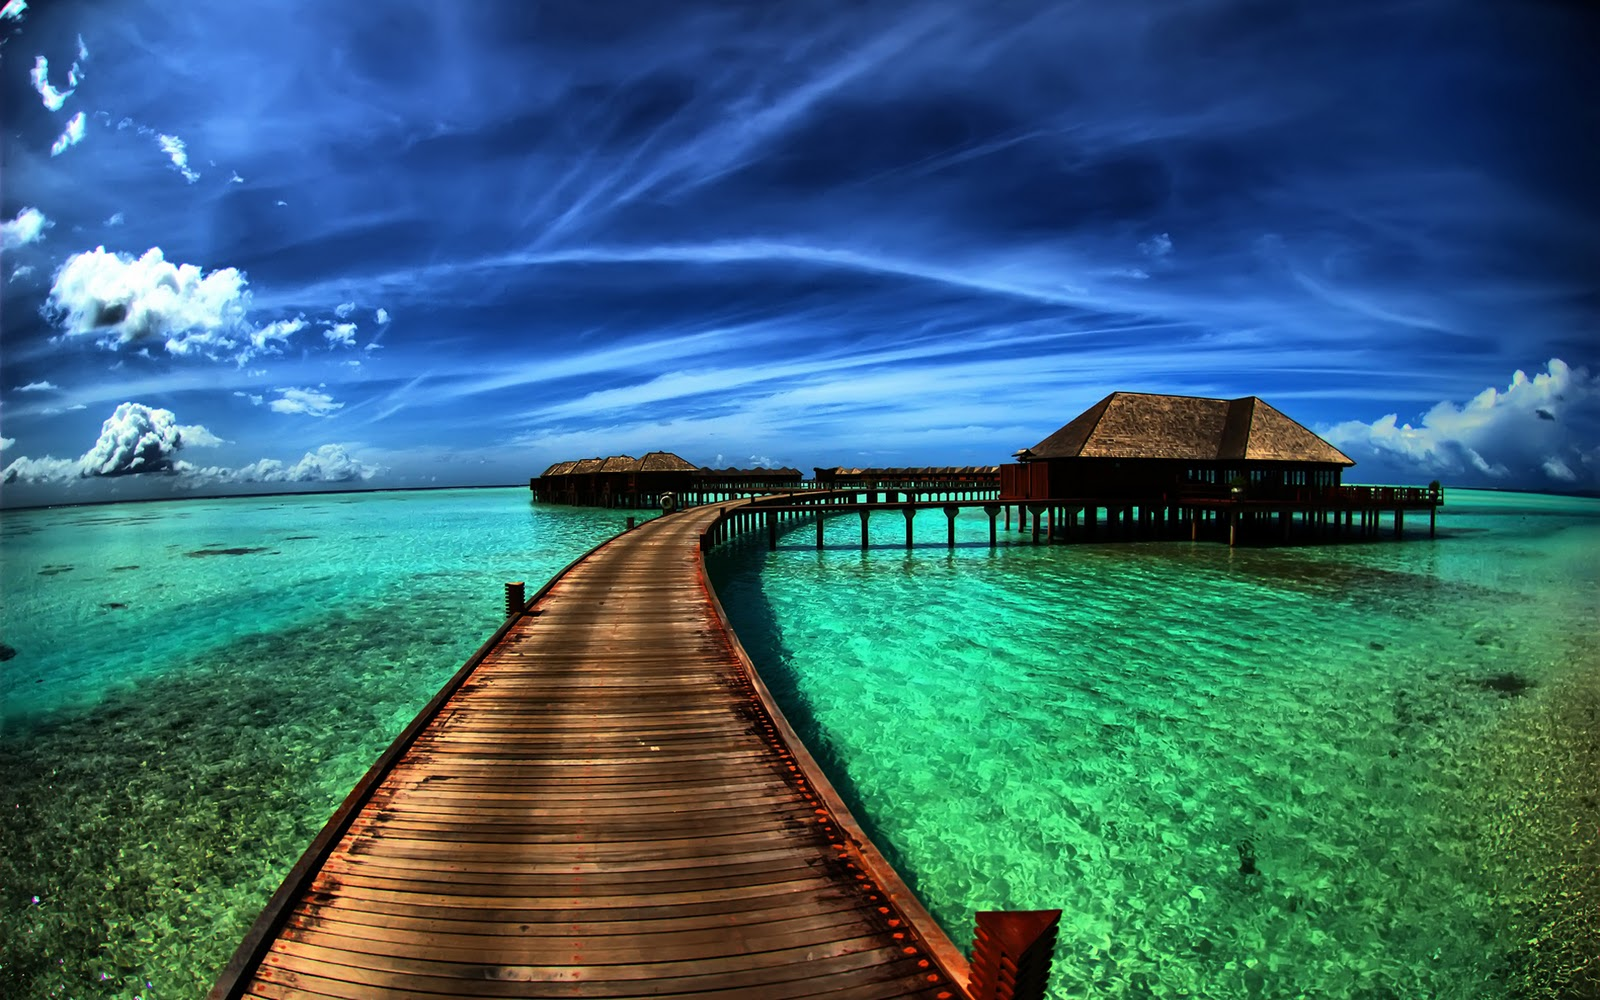 http://2.bp.blogspot.com/-RS9V-fqu3NI/TvLVXwaM8TI/AAAAAAAABcs/8Xf0pov_EDg/s1600/amazing-sea-resort-wallpapers_19252_1920x1200.jpg